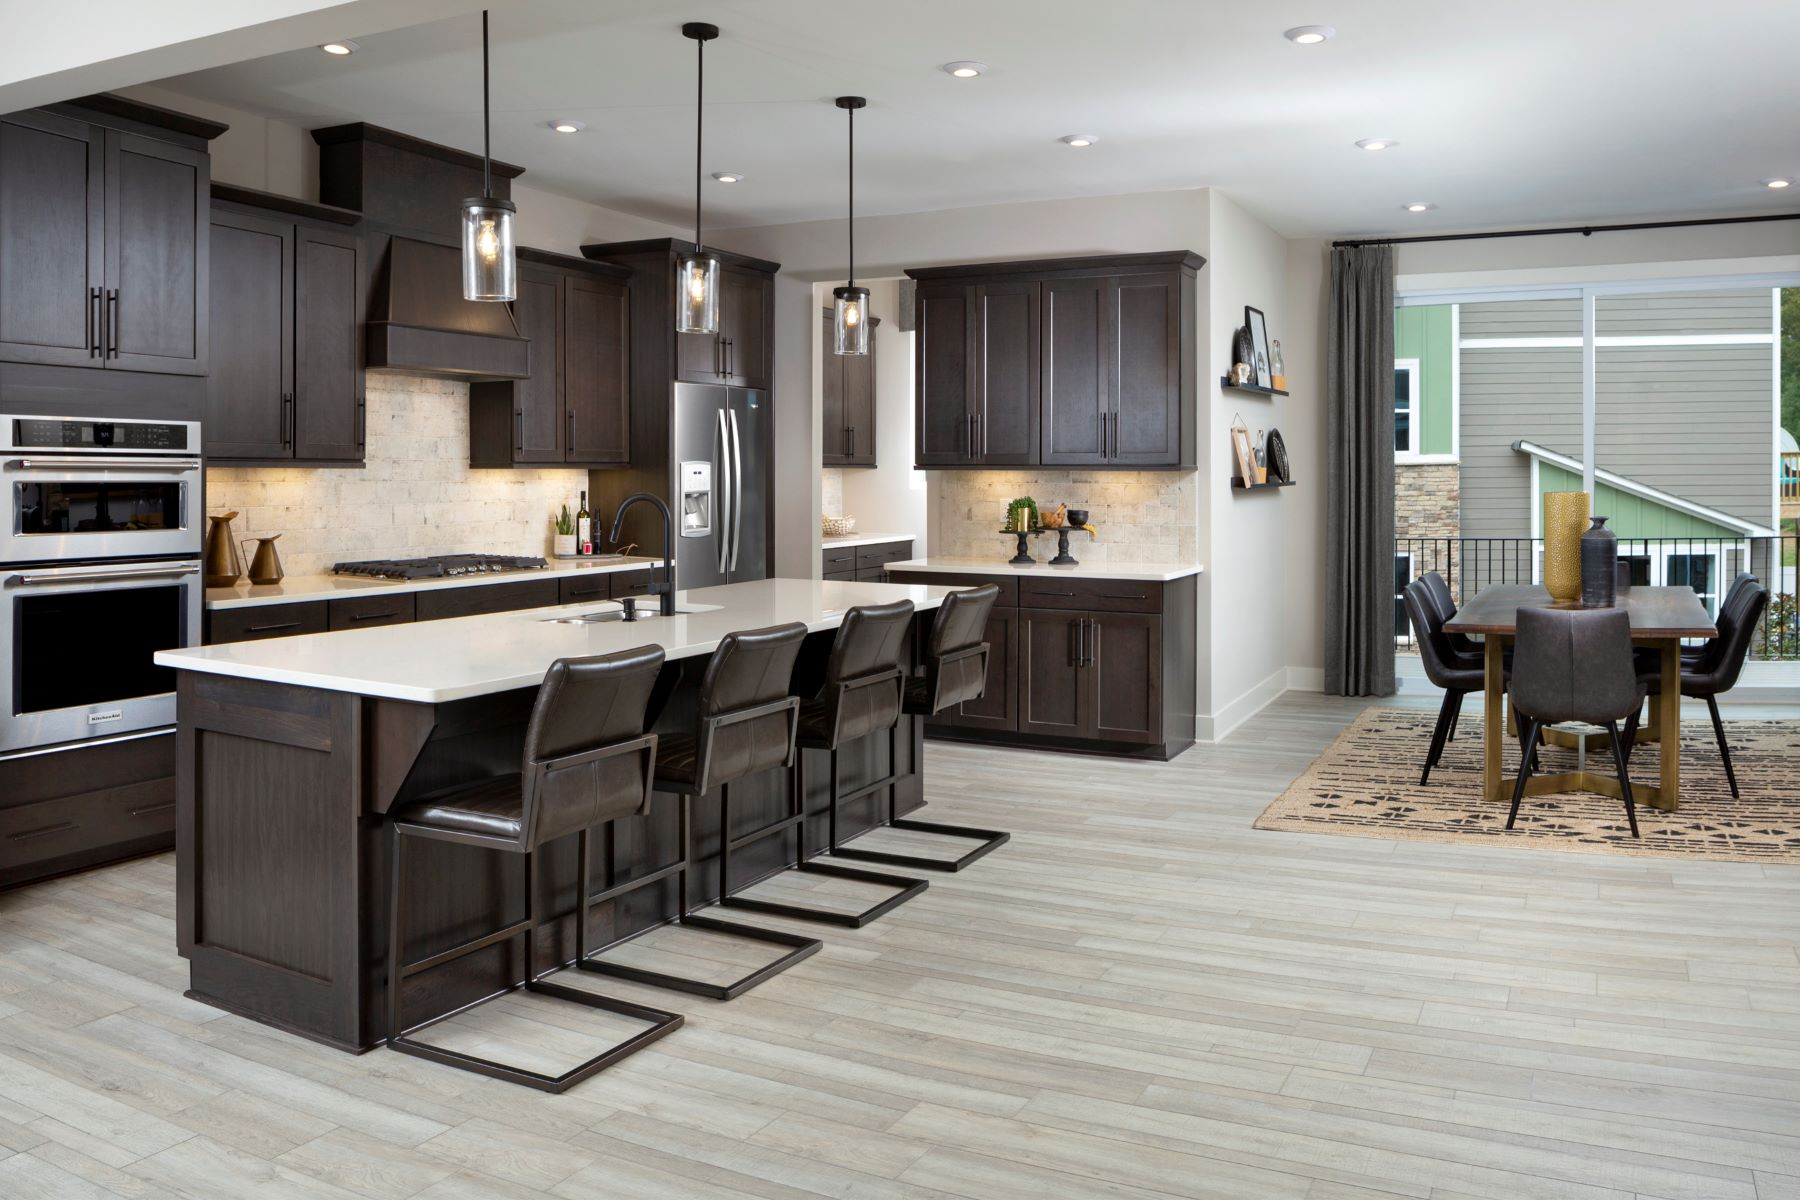 Greenwich Plan Kitchen at Aria at The Park in Charlotte North Carolina by Mattamy Homes